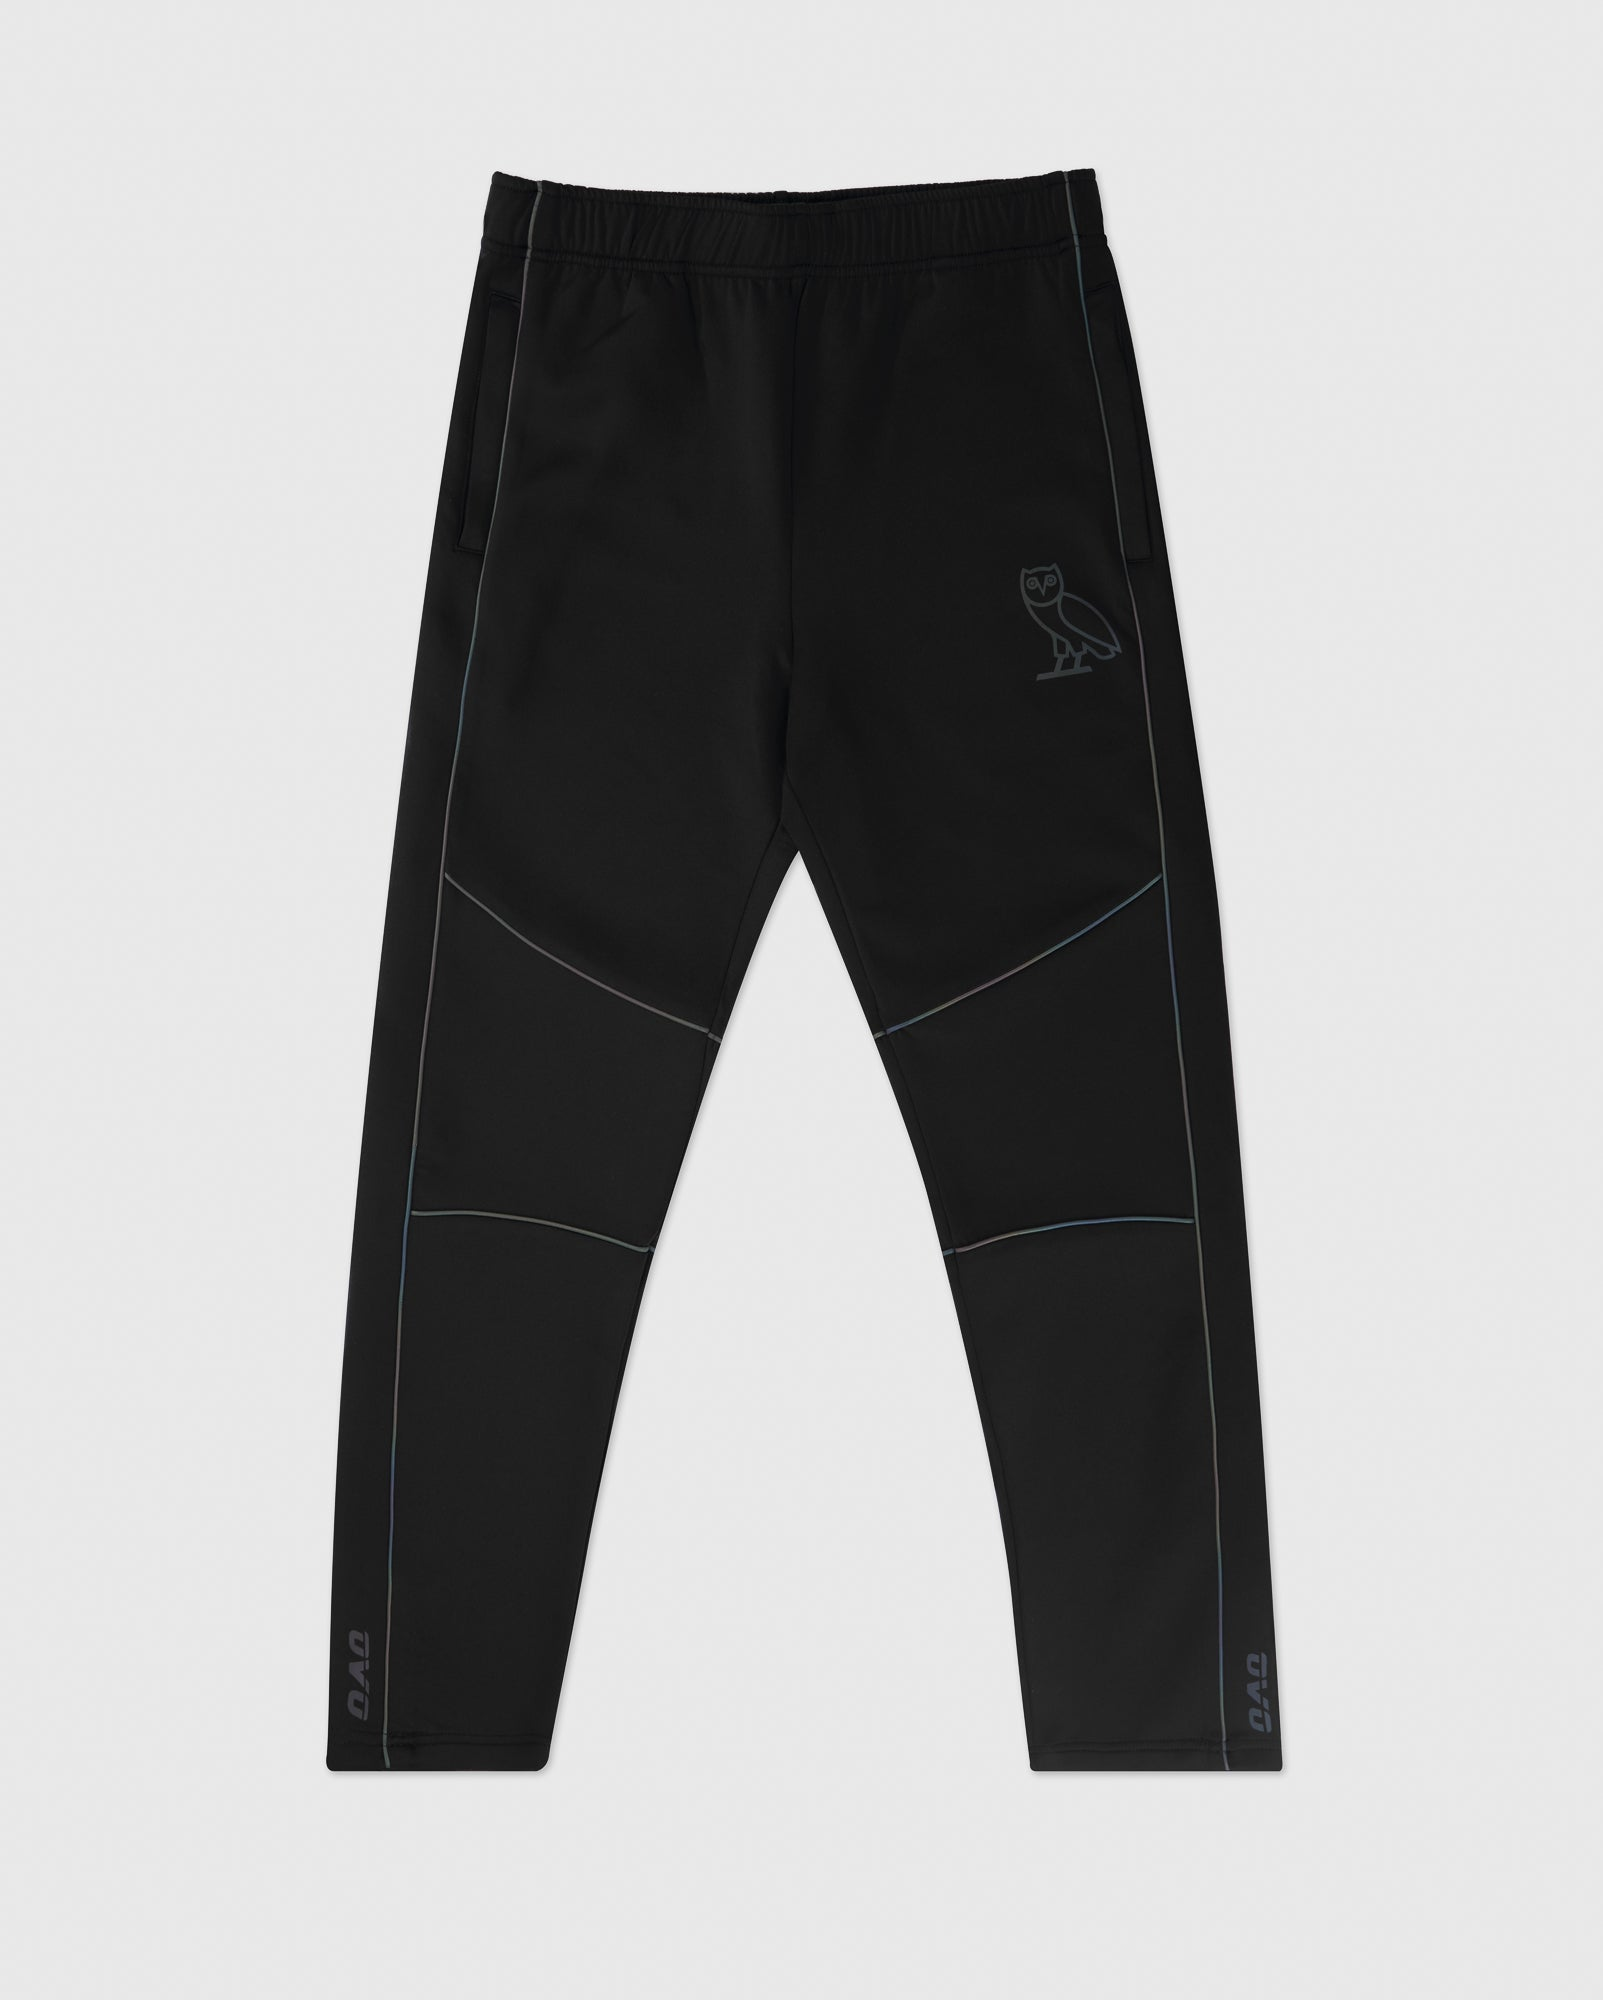 REFLECTIVE PIPING PANT - BLACK IMAGE #1